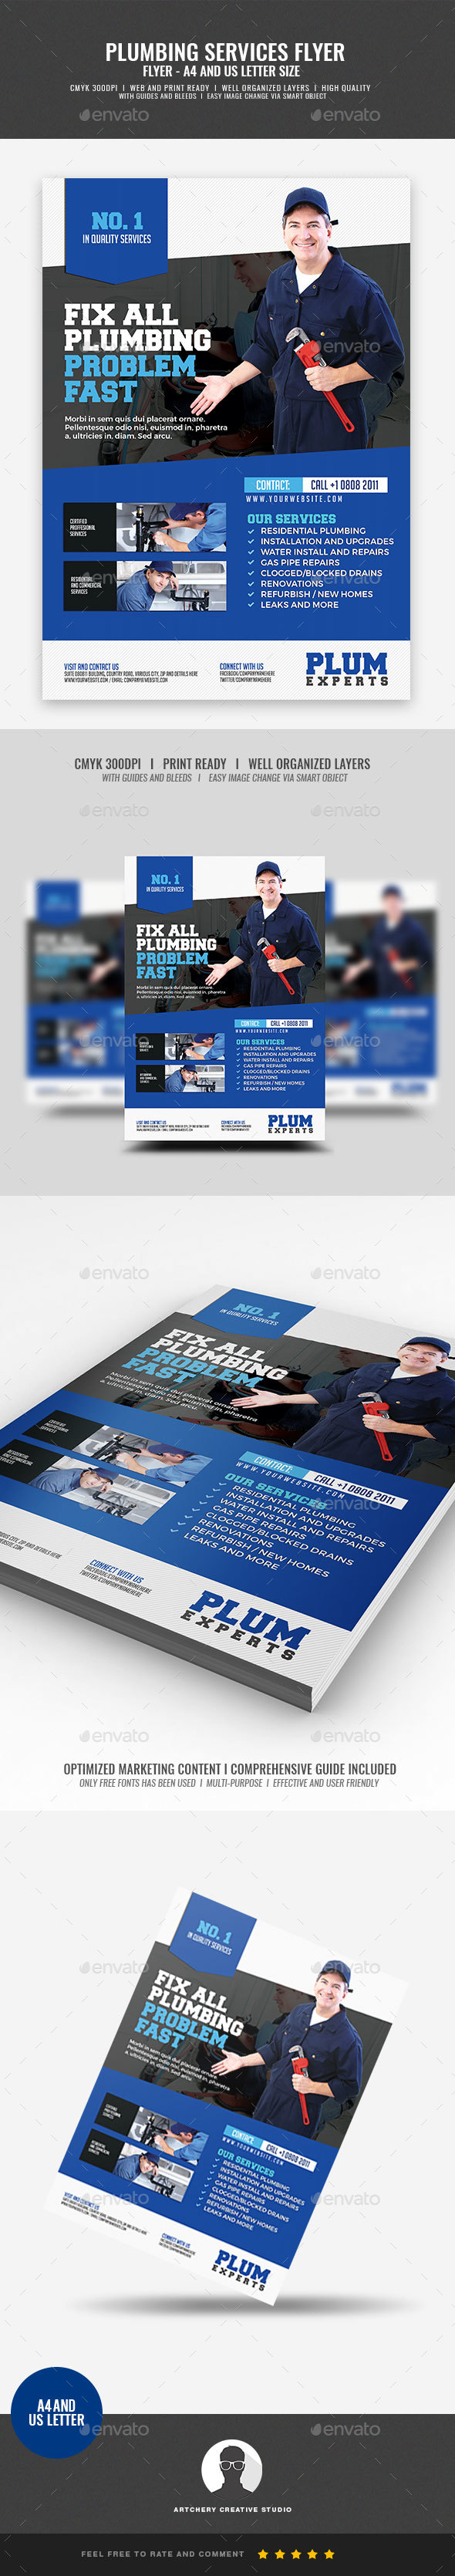 GraphicRiver Plumber Services Flyer 21033344